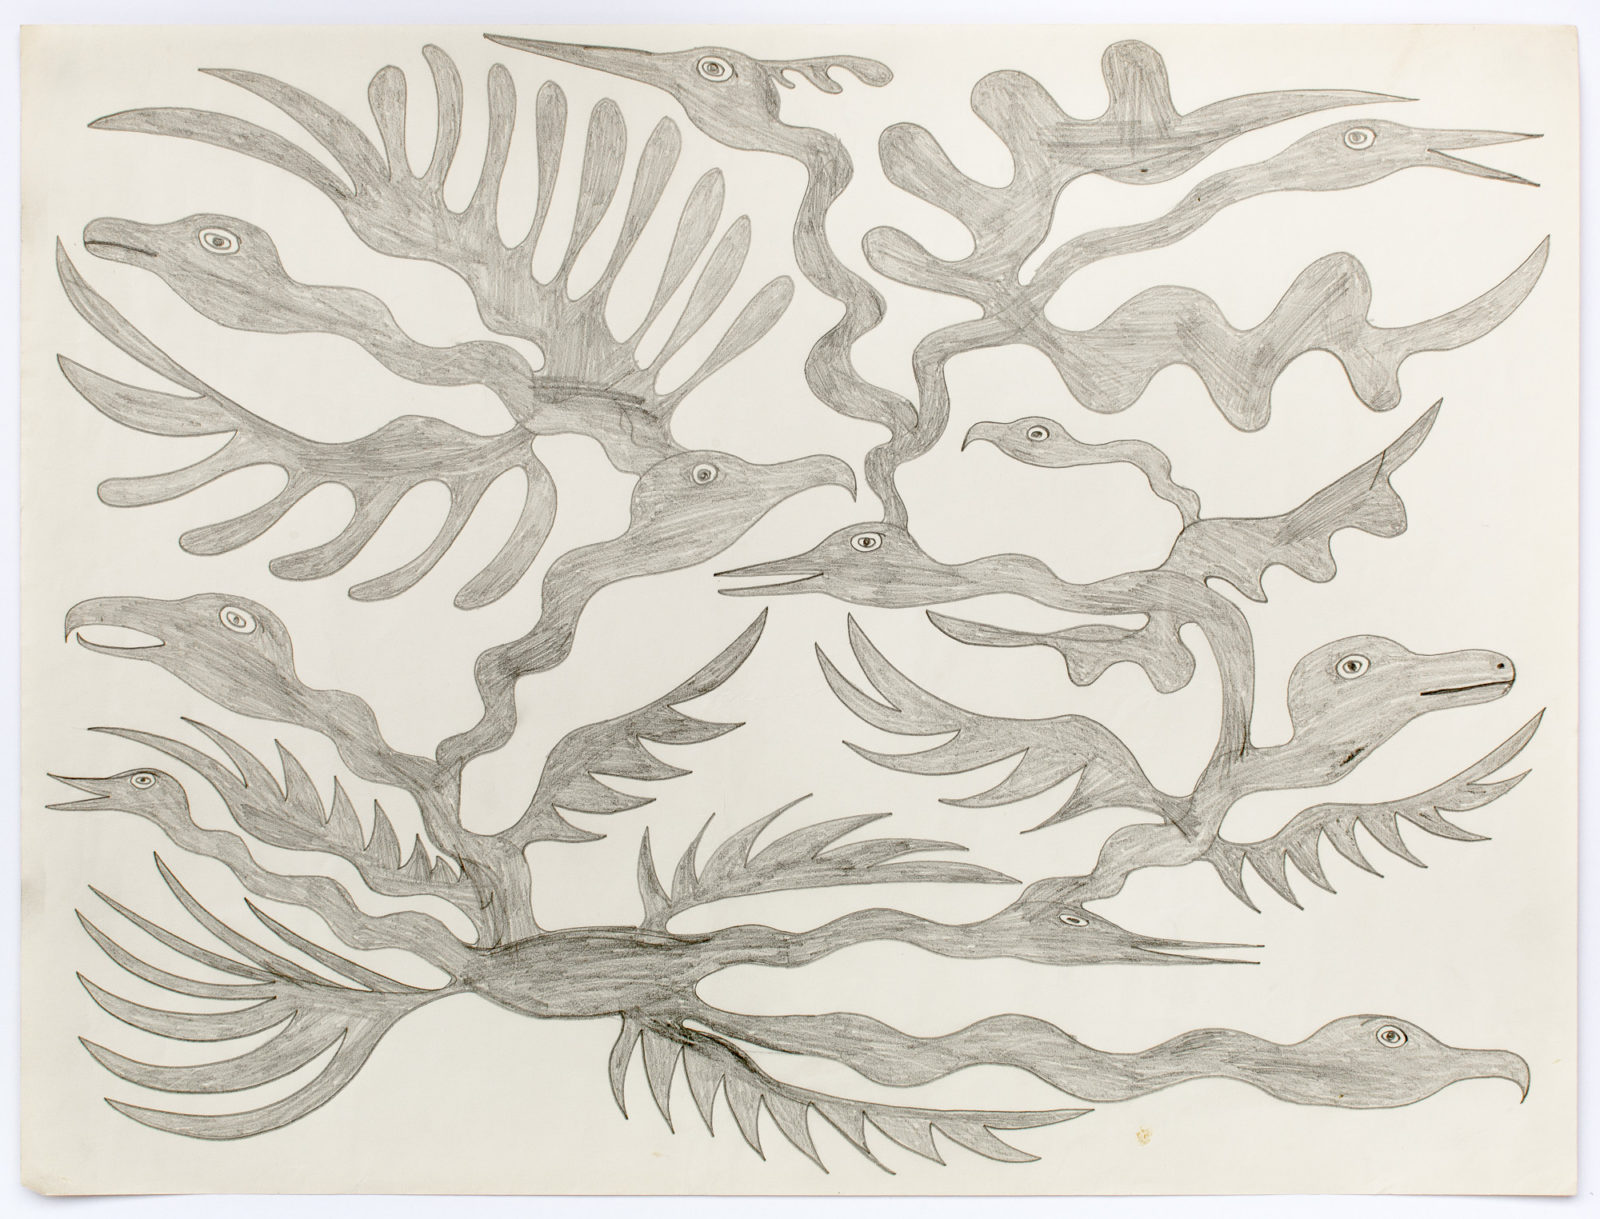 Kenojuak Ashevak - untitled (birds)